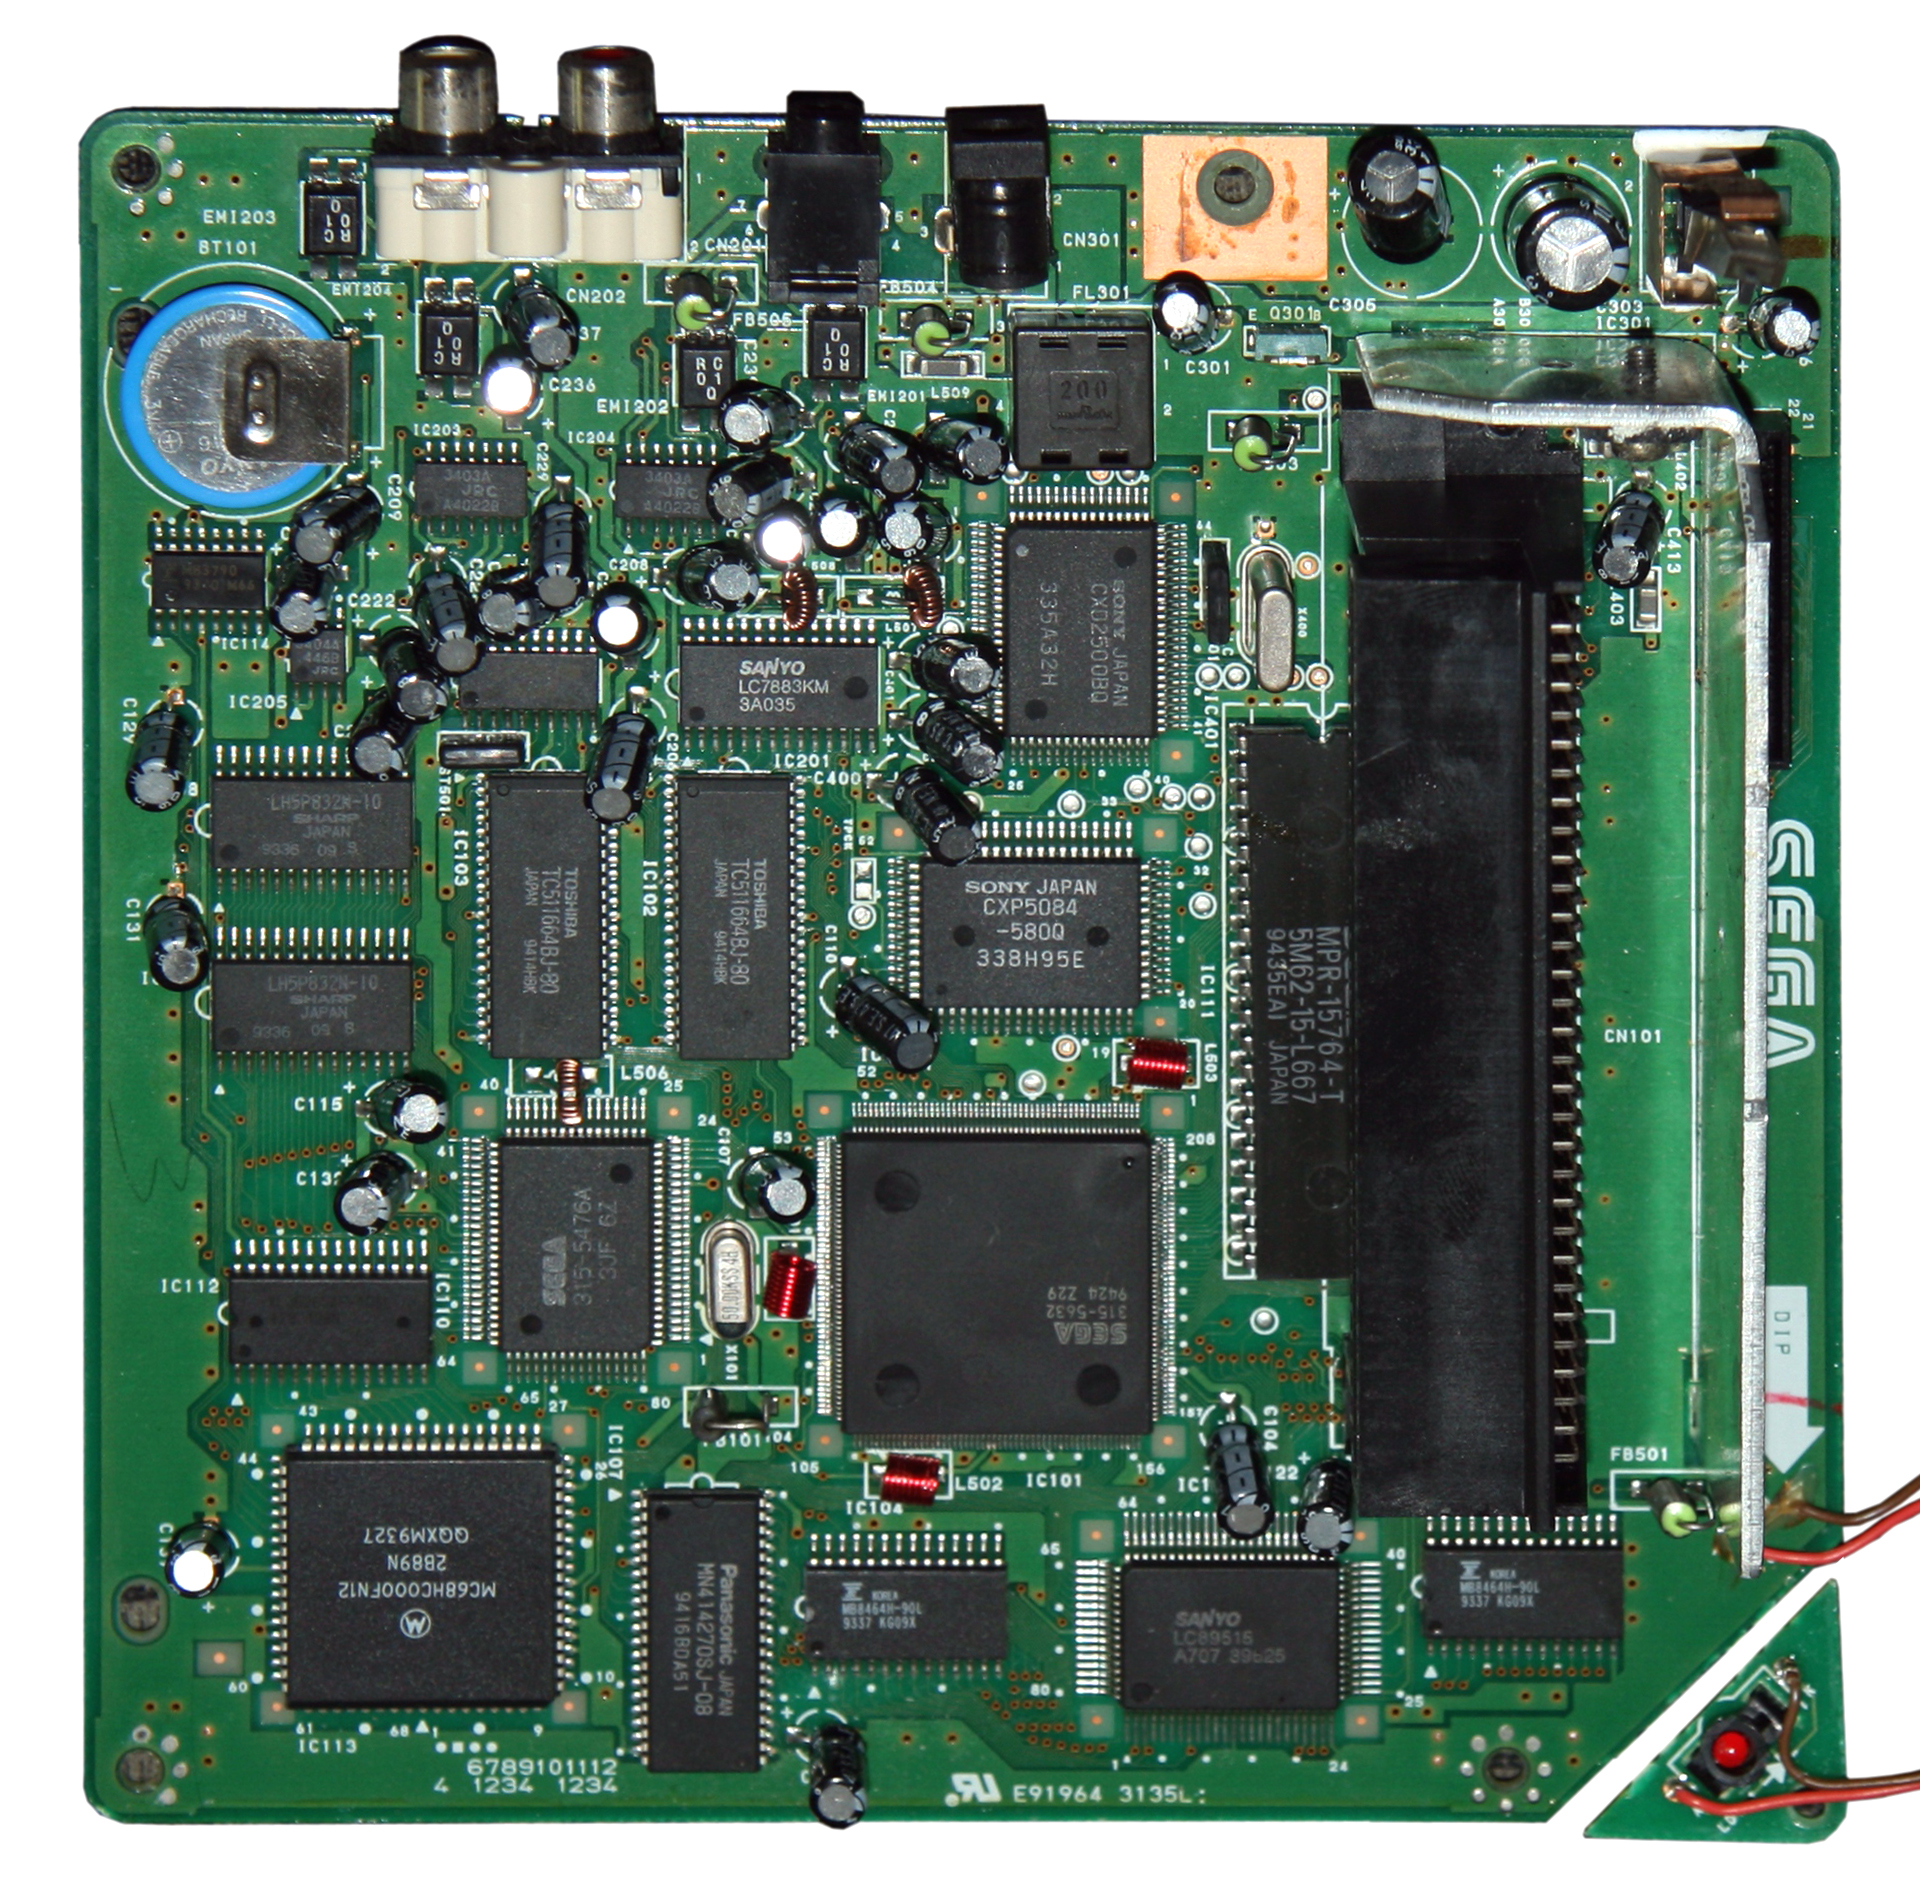 Filegame Console Sega Cd Motherboard 171 6528c A Wikimedia Cool Electronics Circuits March 2011 Current 1922 4